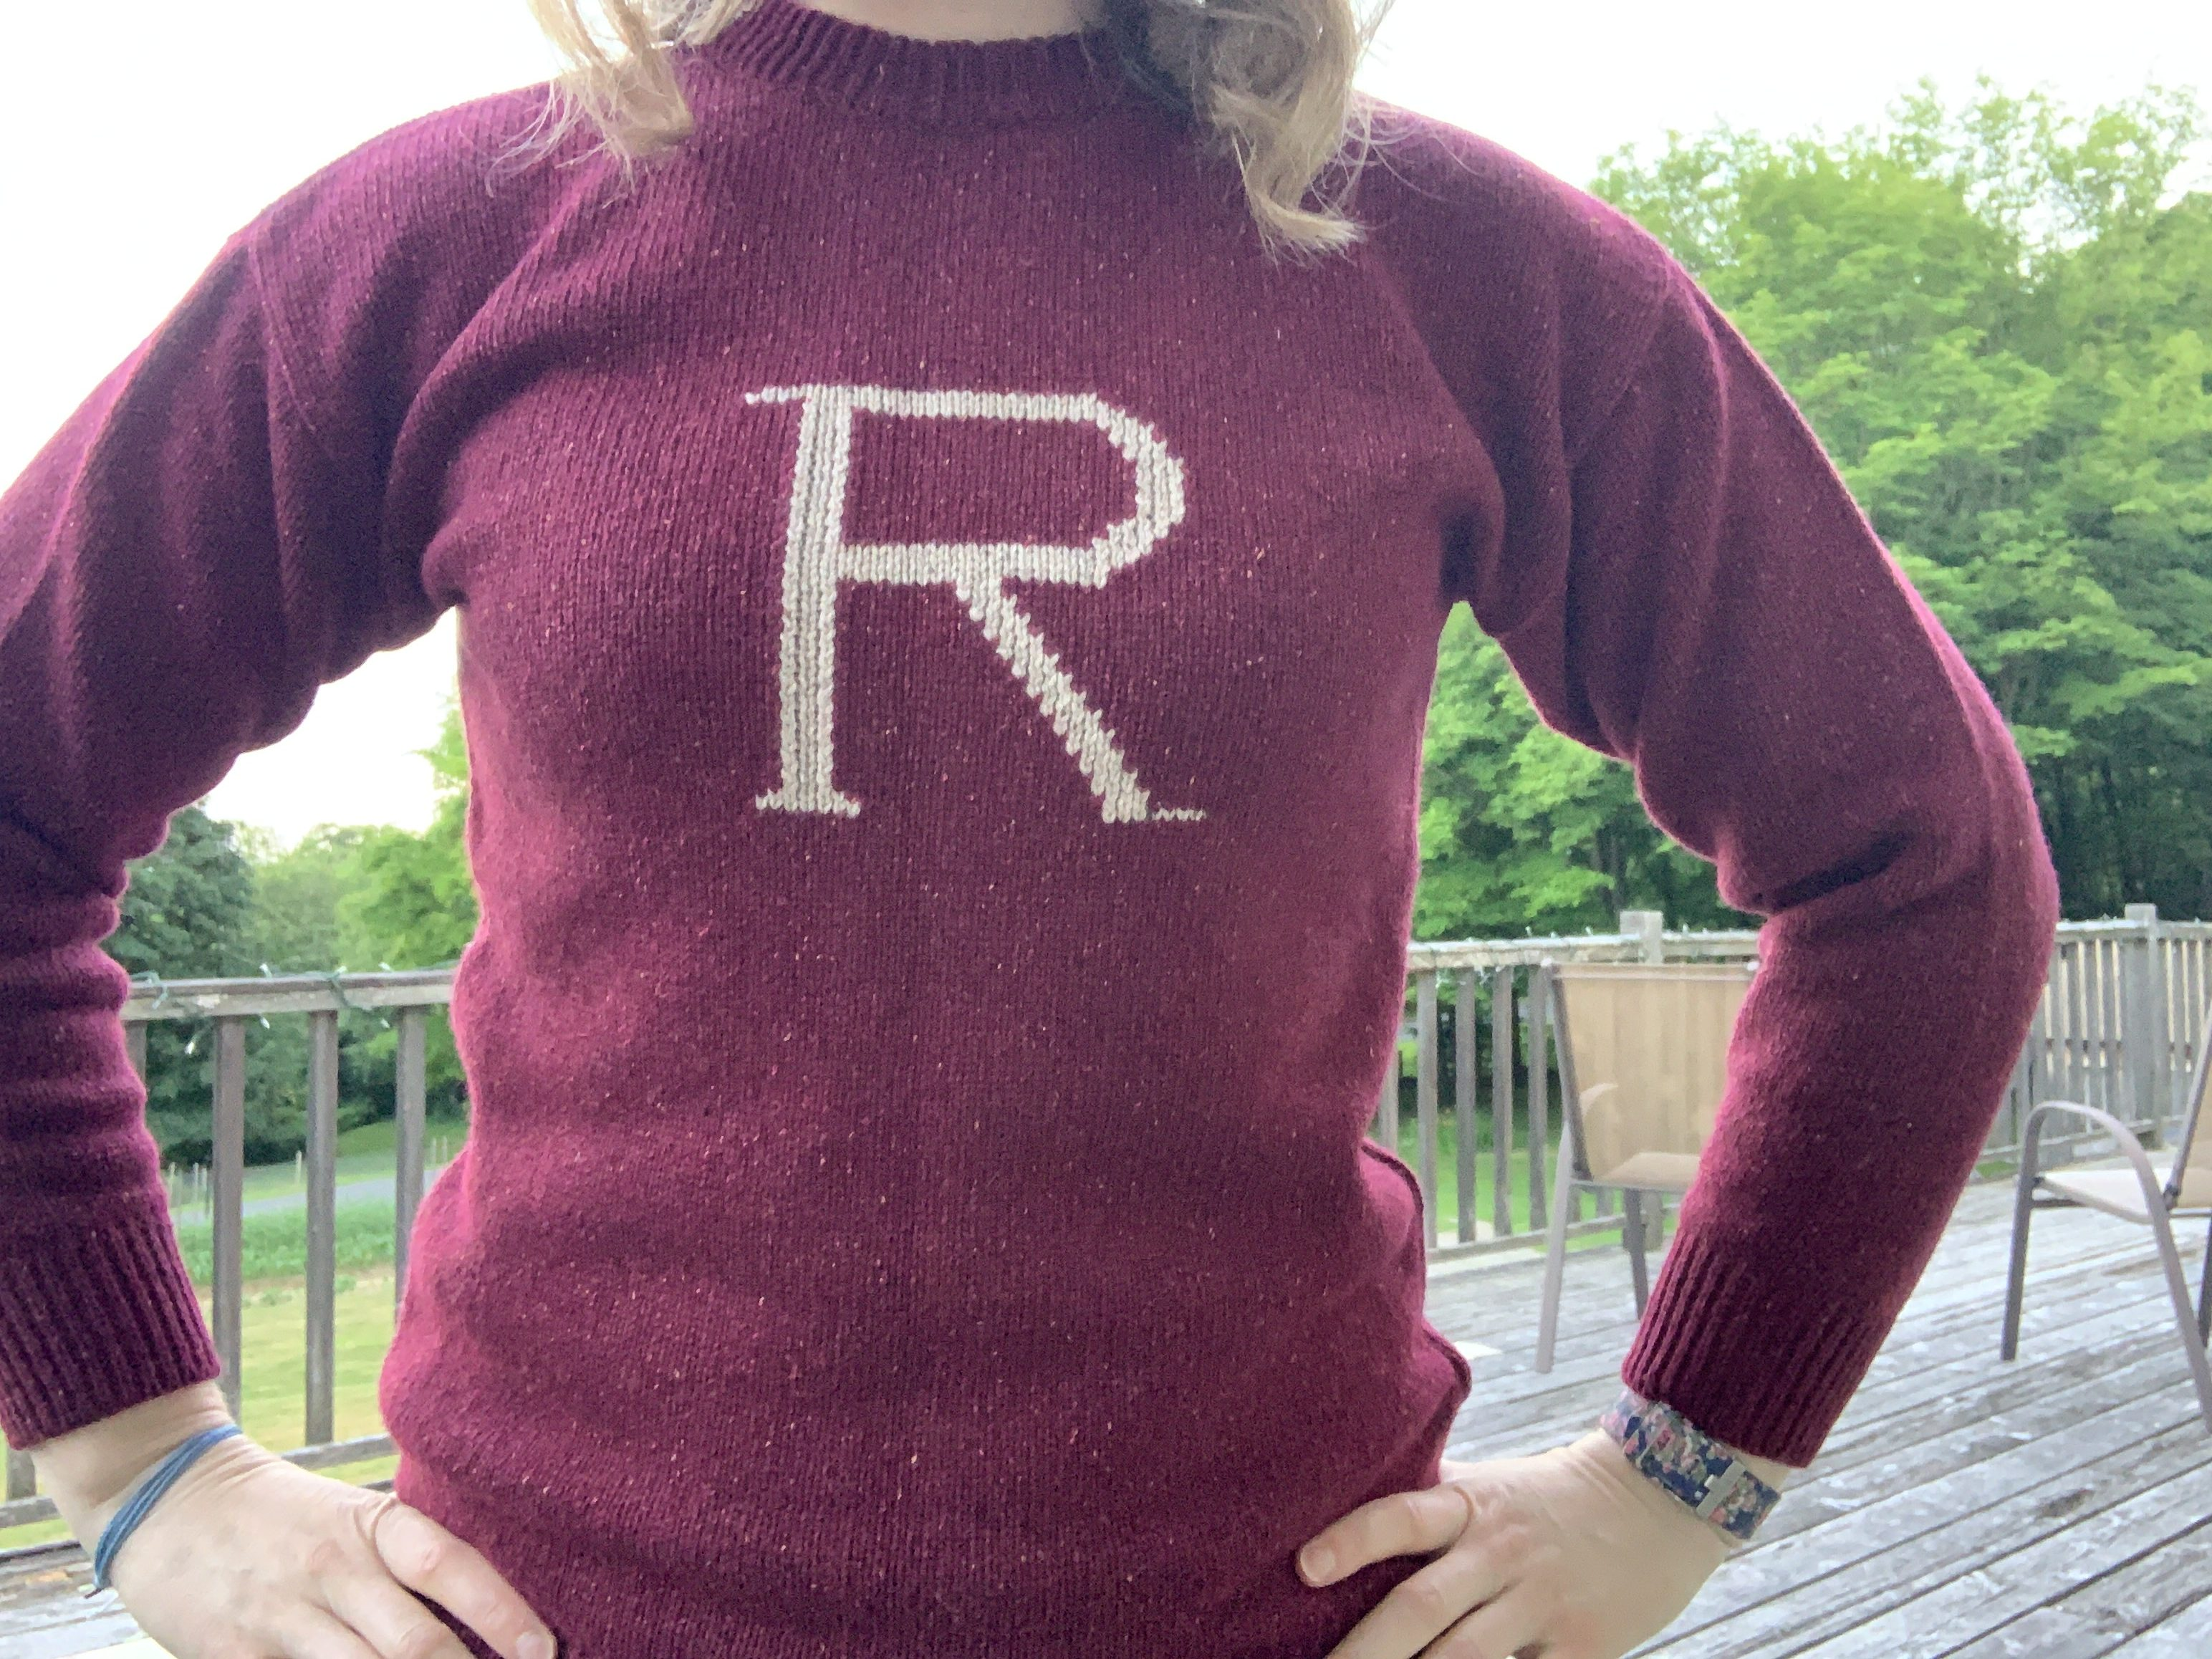 """Close up on the """"R"""" in the middle of the sweater"""